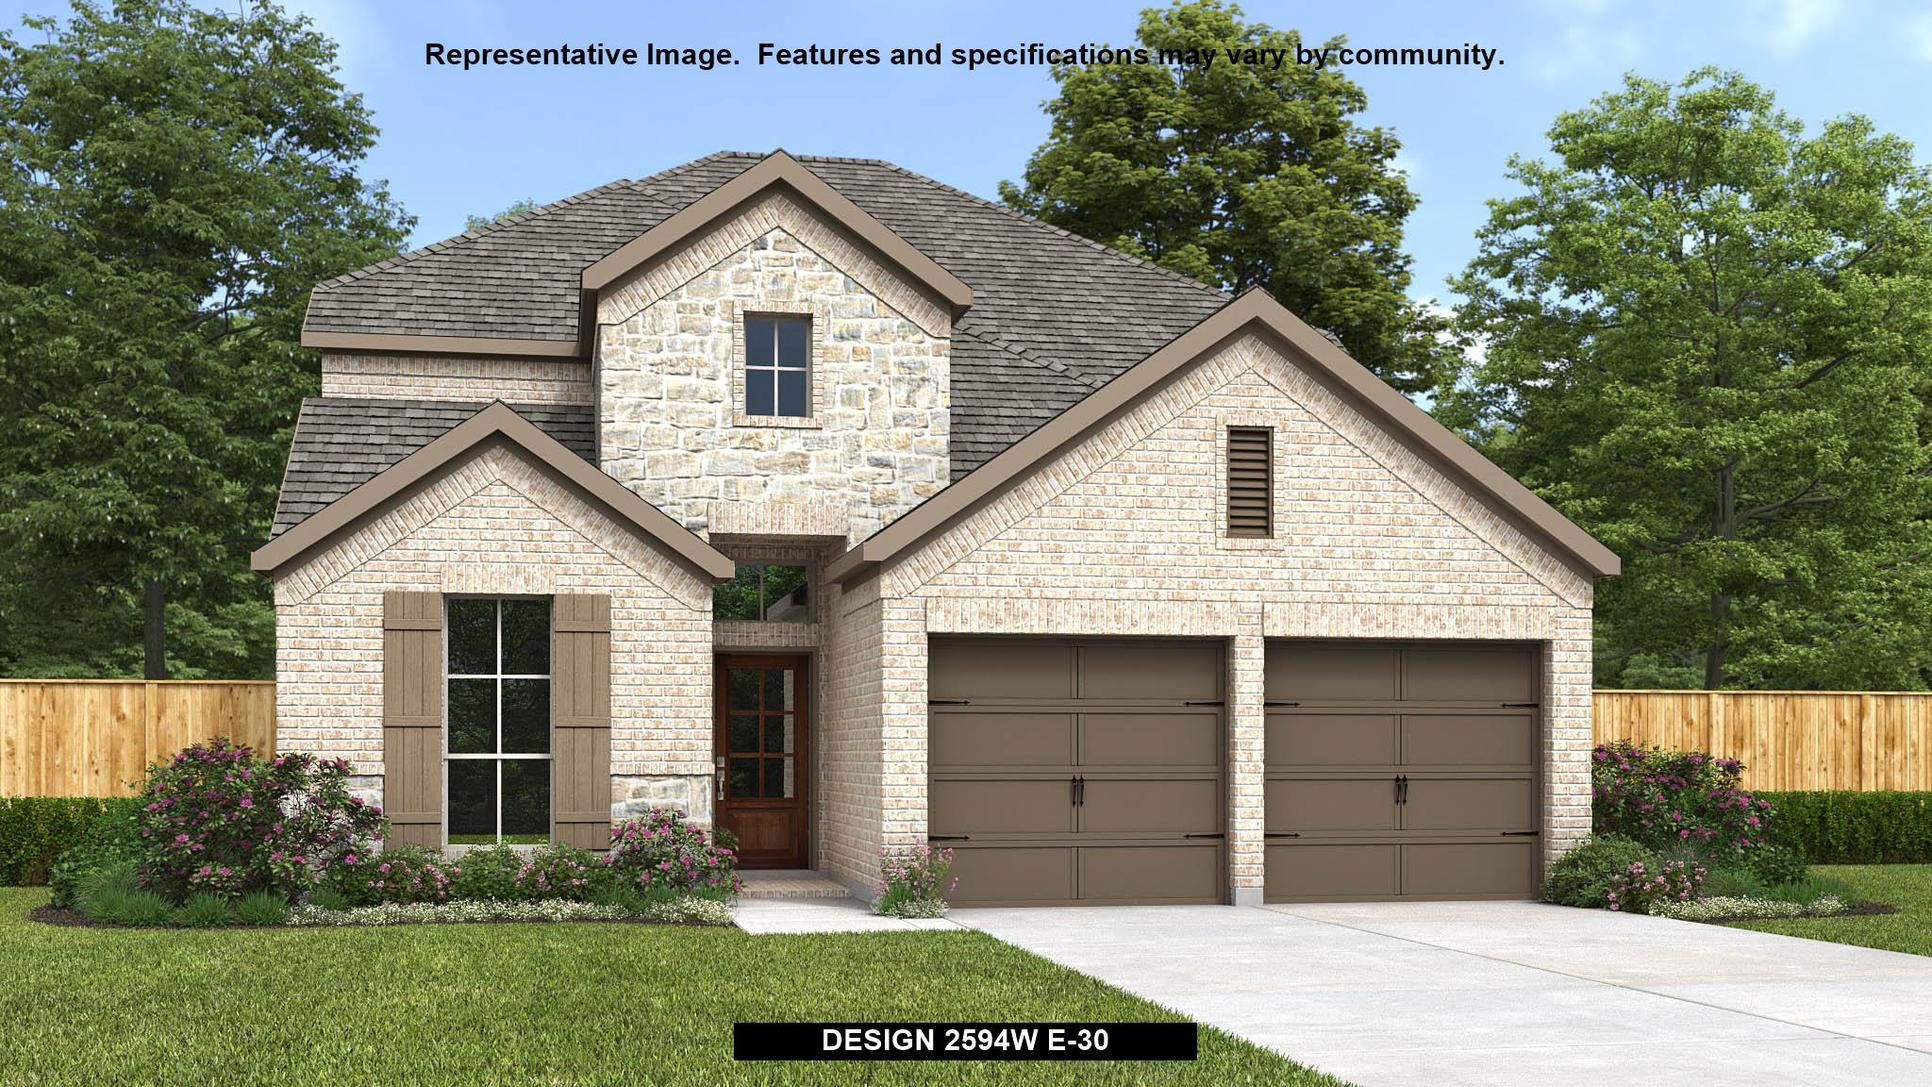 Plan 2594W:Representative photo.  Features and specifications may vary by community.